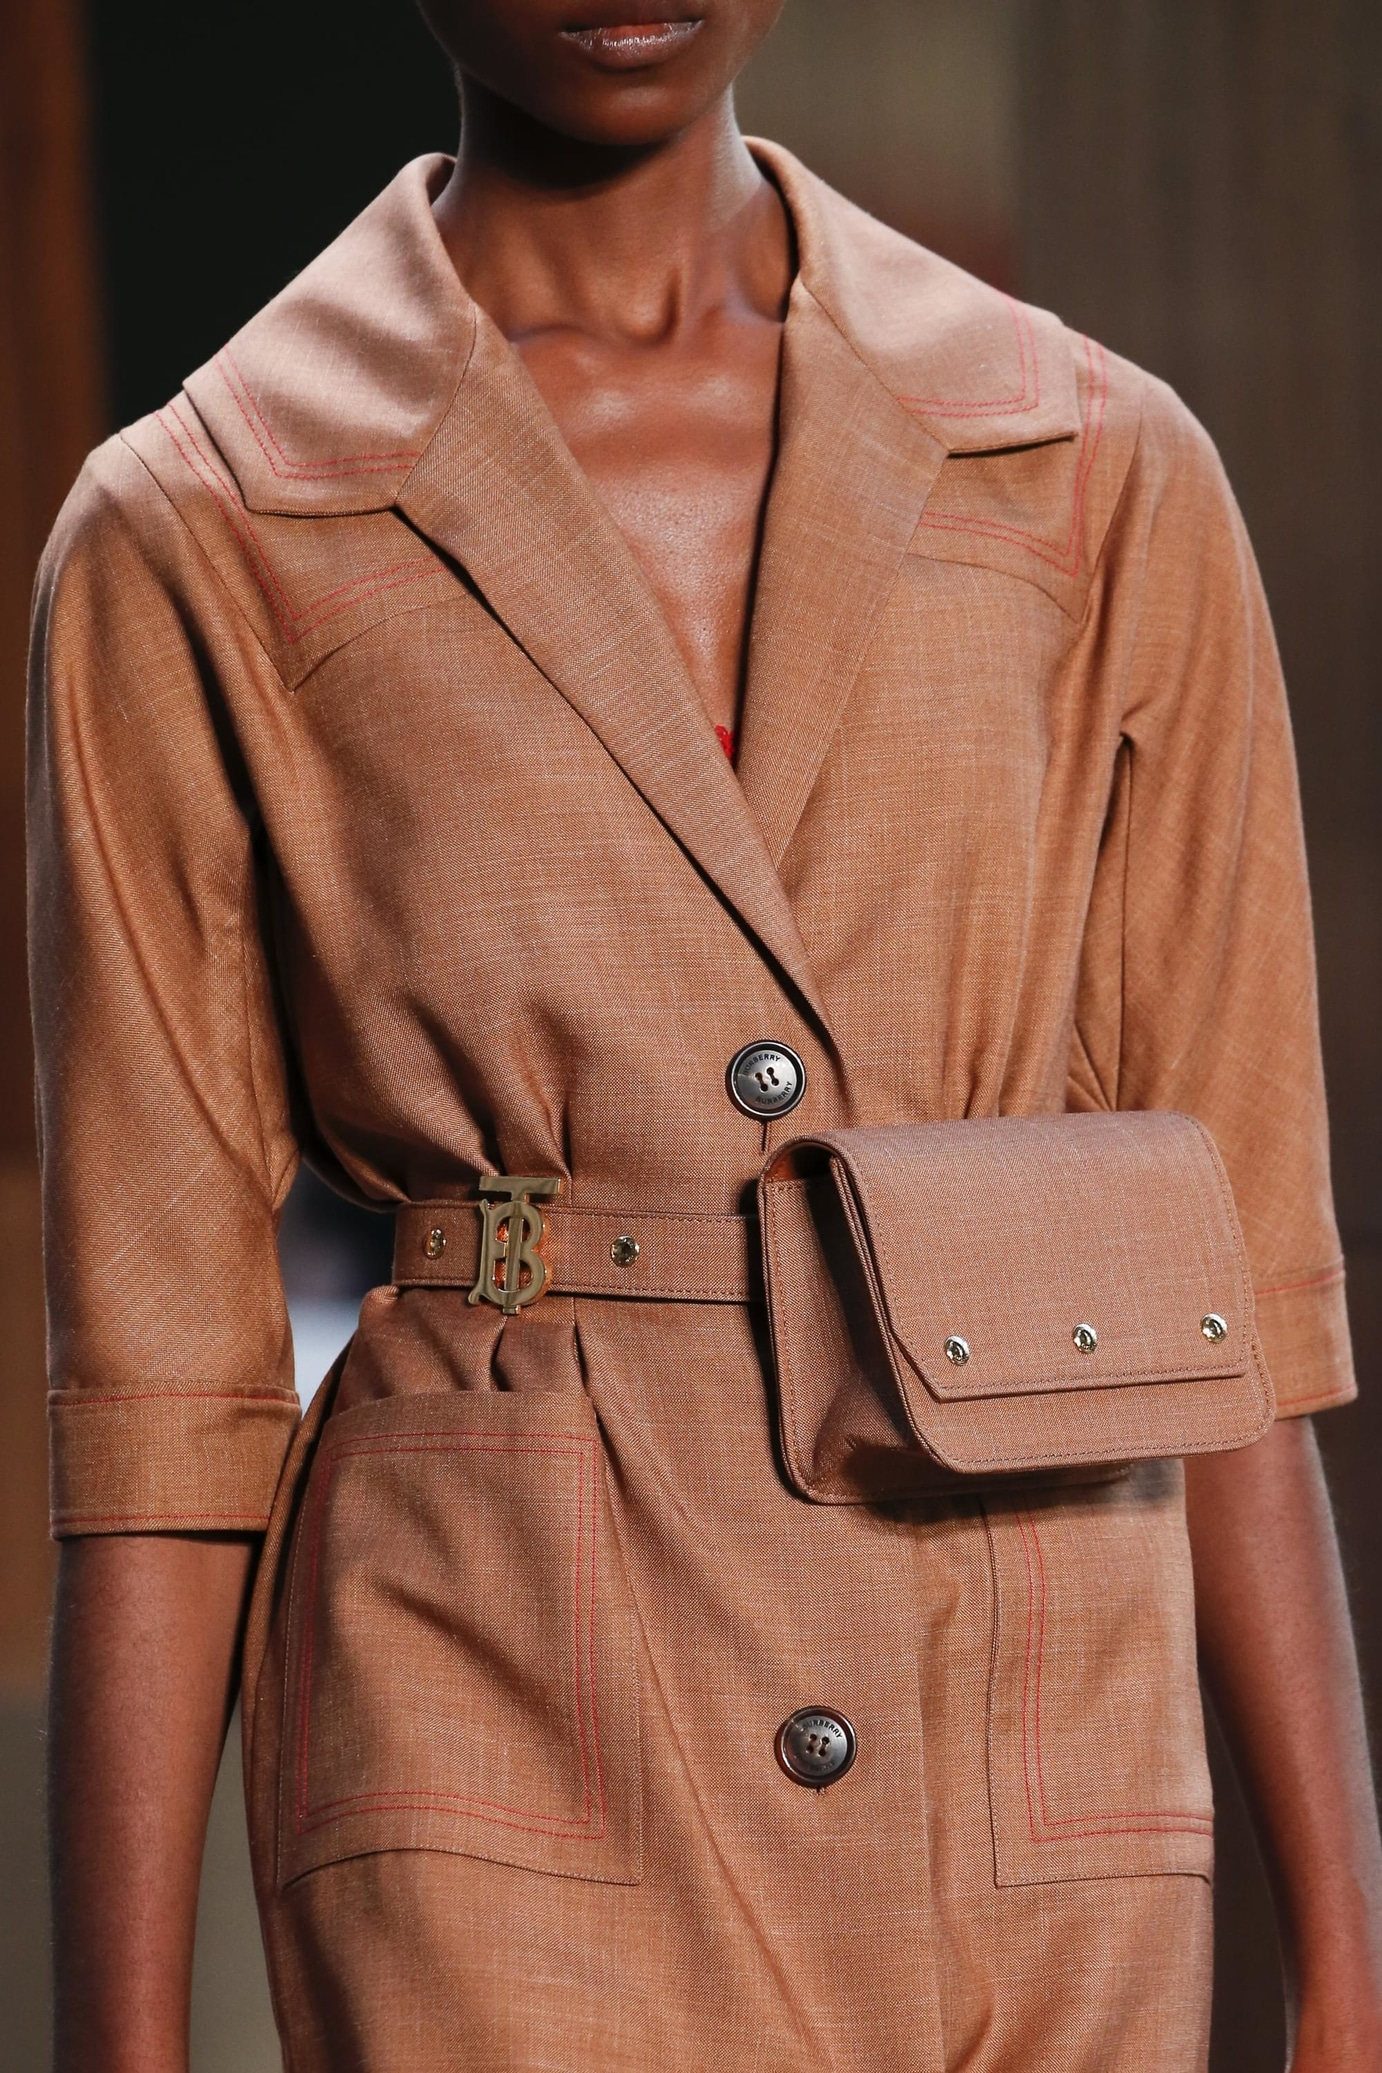 Burberry Spring/Summer 2019 Runway Bag Collection ...